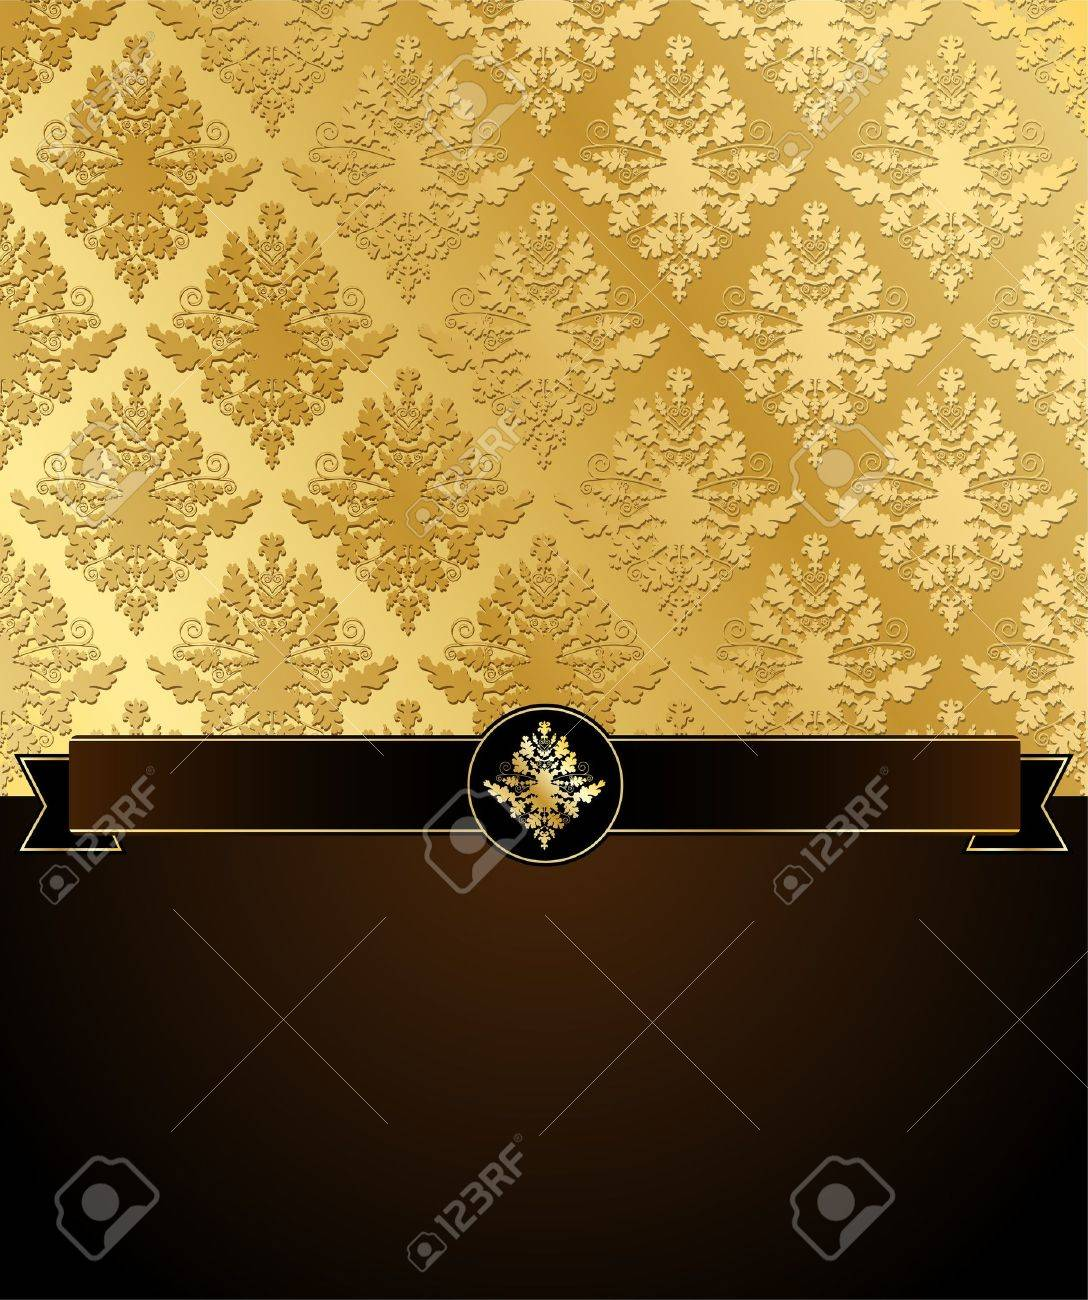 Vector illustration of Gold Damask with black ribbon and a dark brown place for text Stock Vector - 11661526